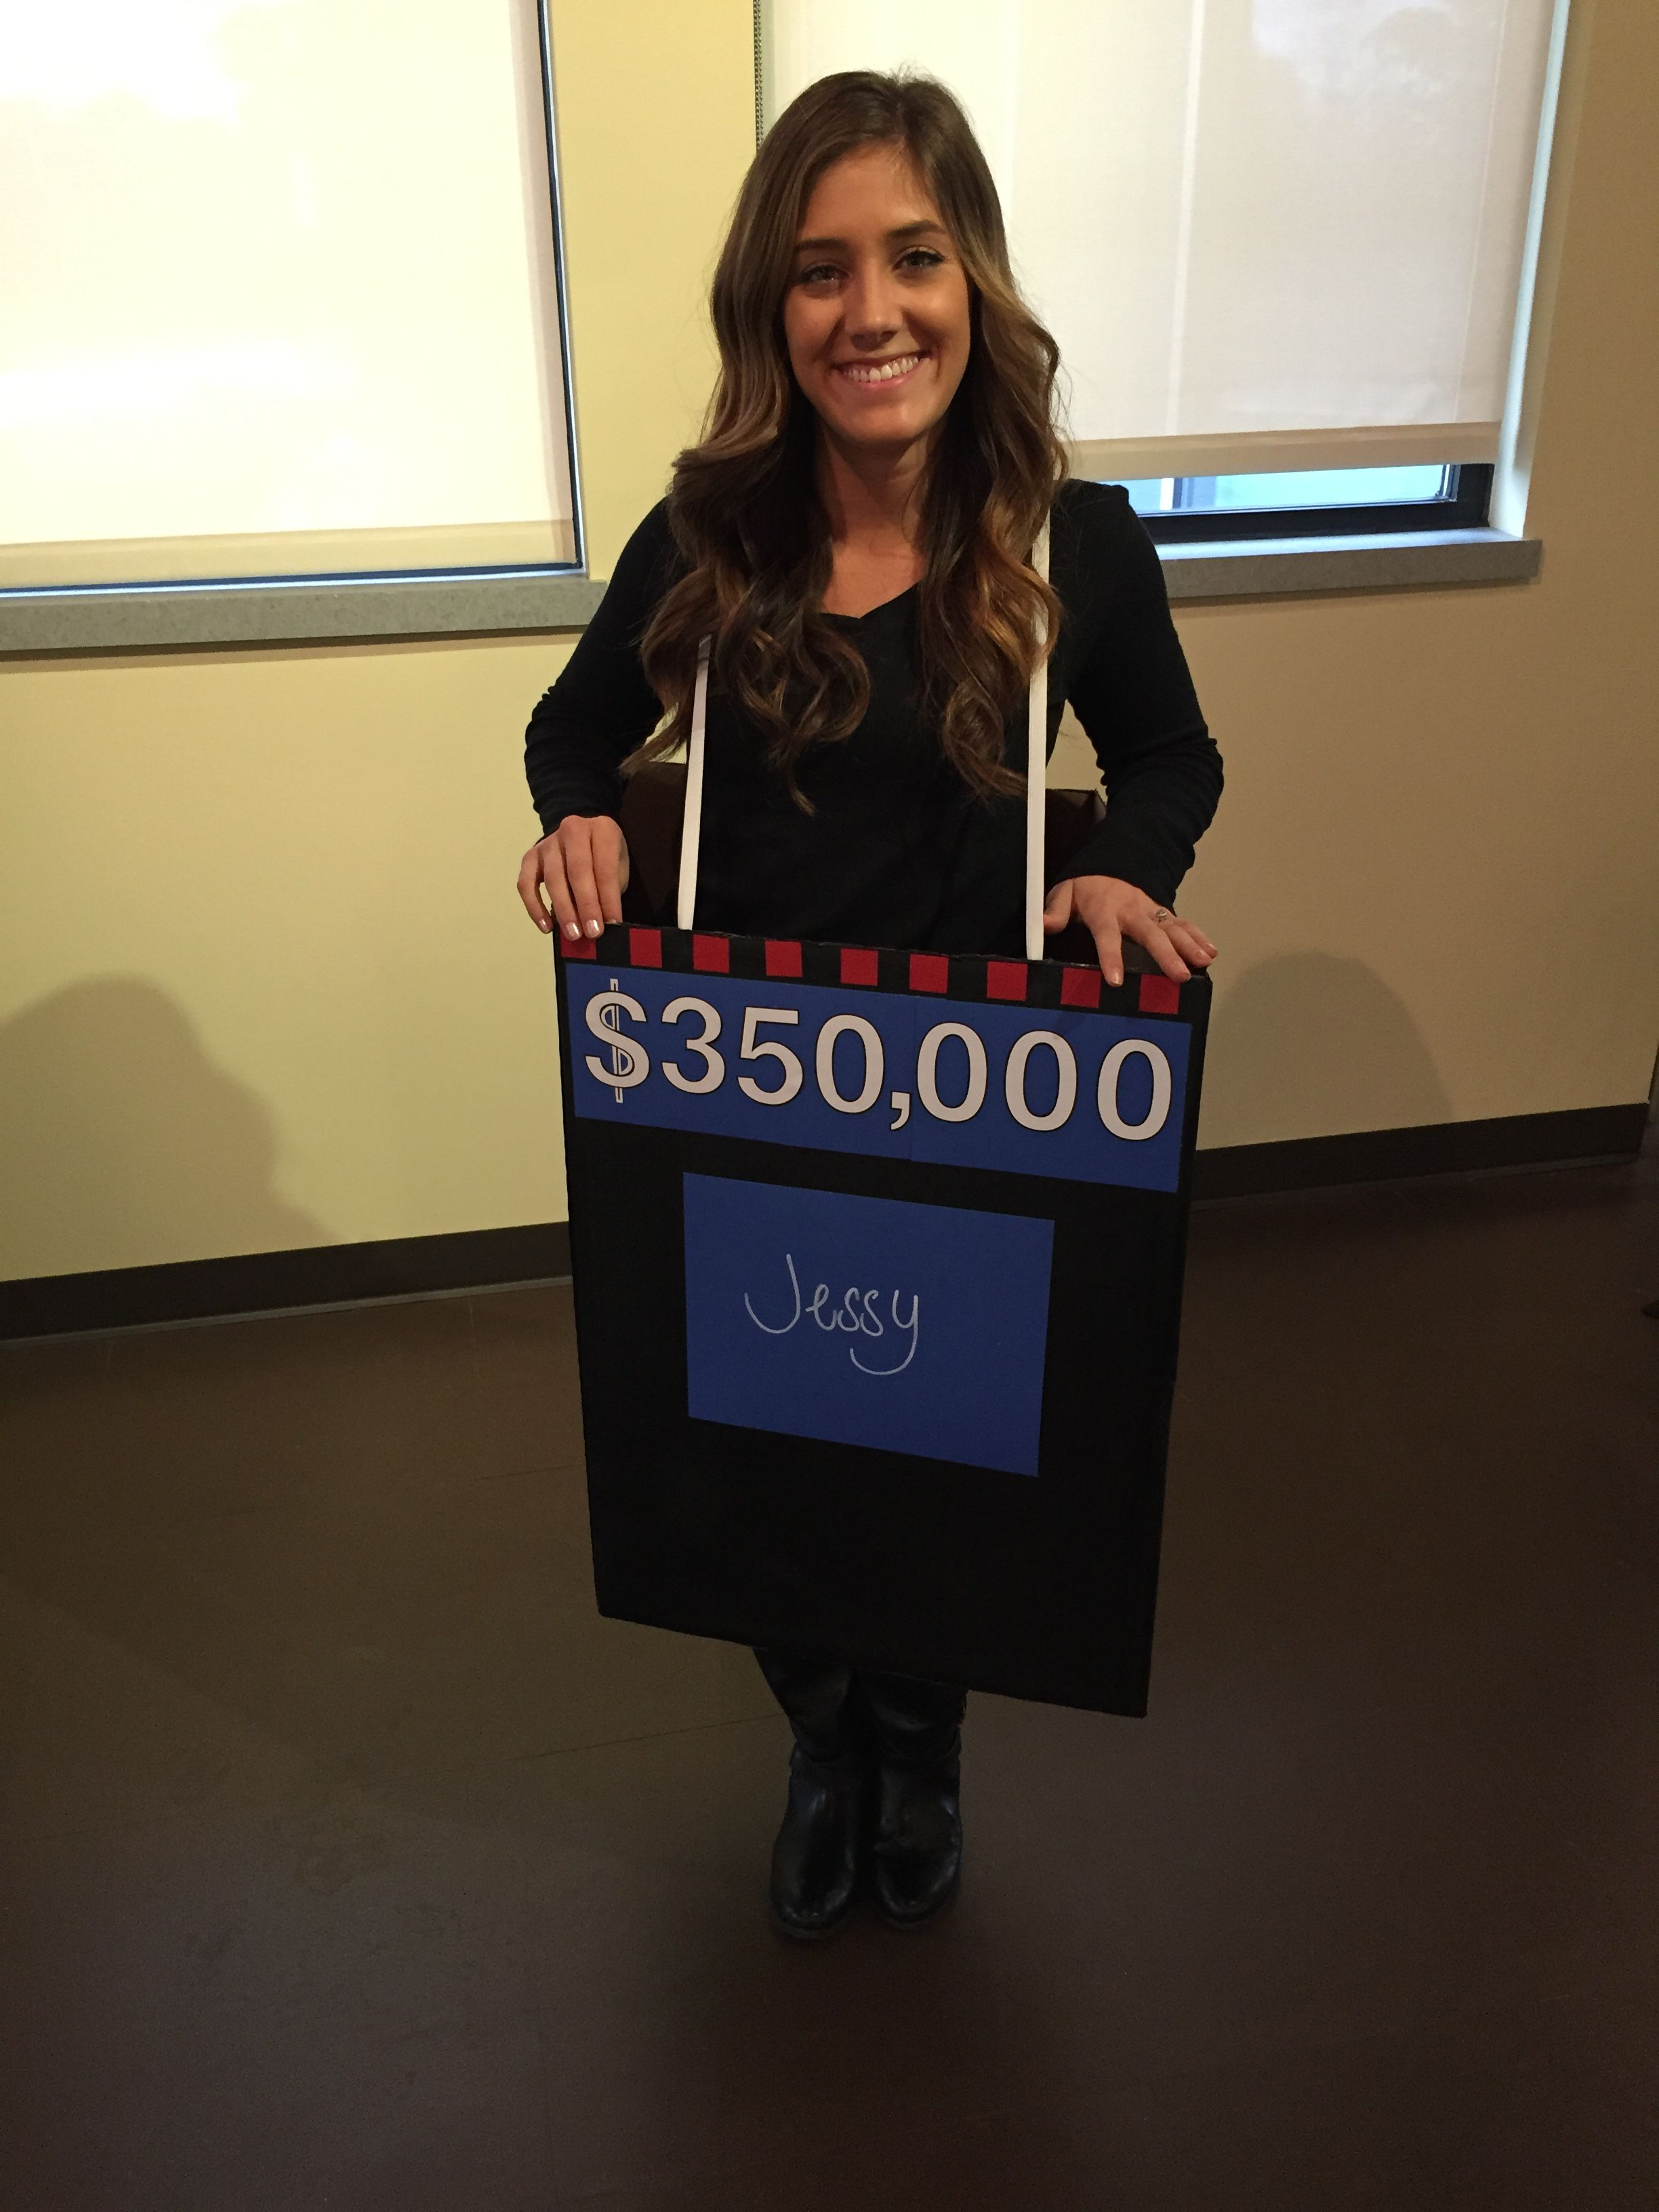 jeopardy-box.jpg 2448×3264 pixels  sc 1 st  Pinterest & jeopardy-box.jpg 2448×3264 pixels | Costume Design | Pinterest ...